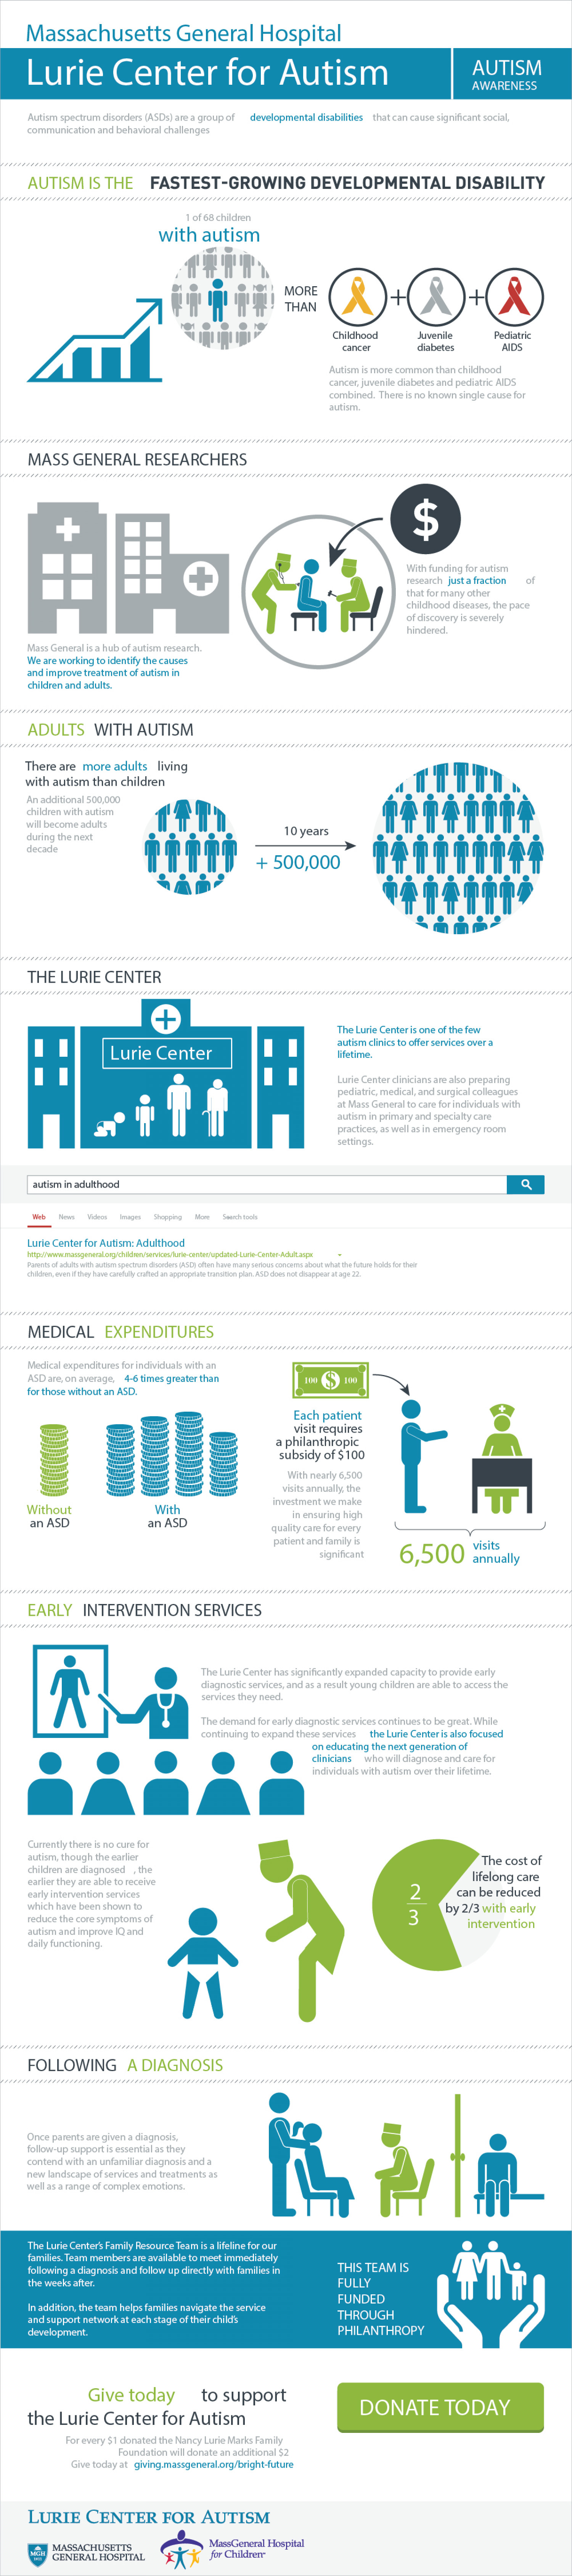 Lurie Center for Autism Infographic